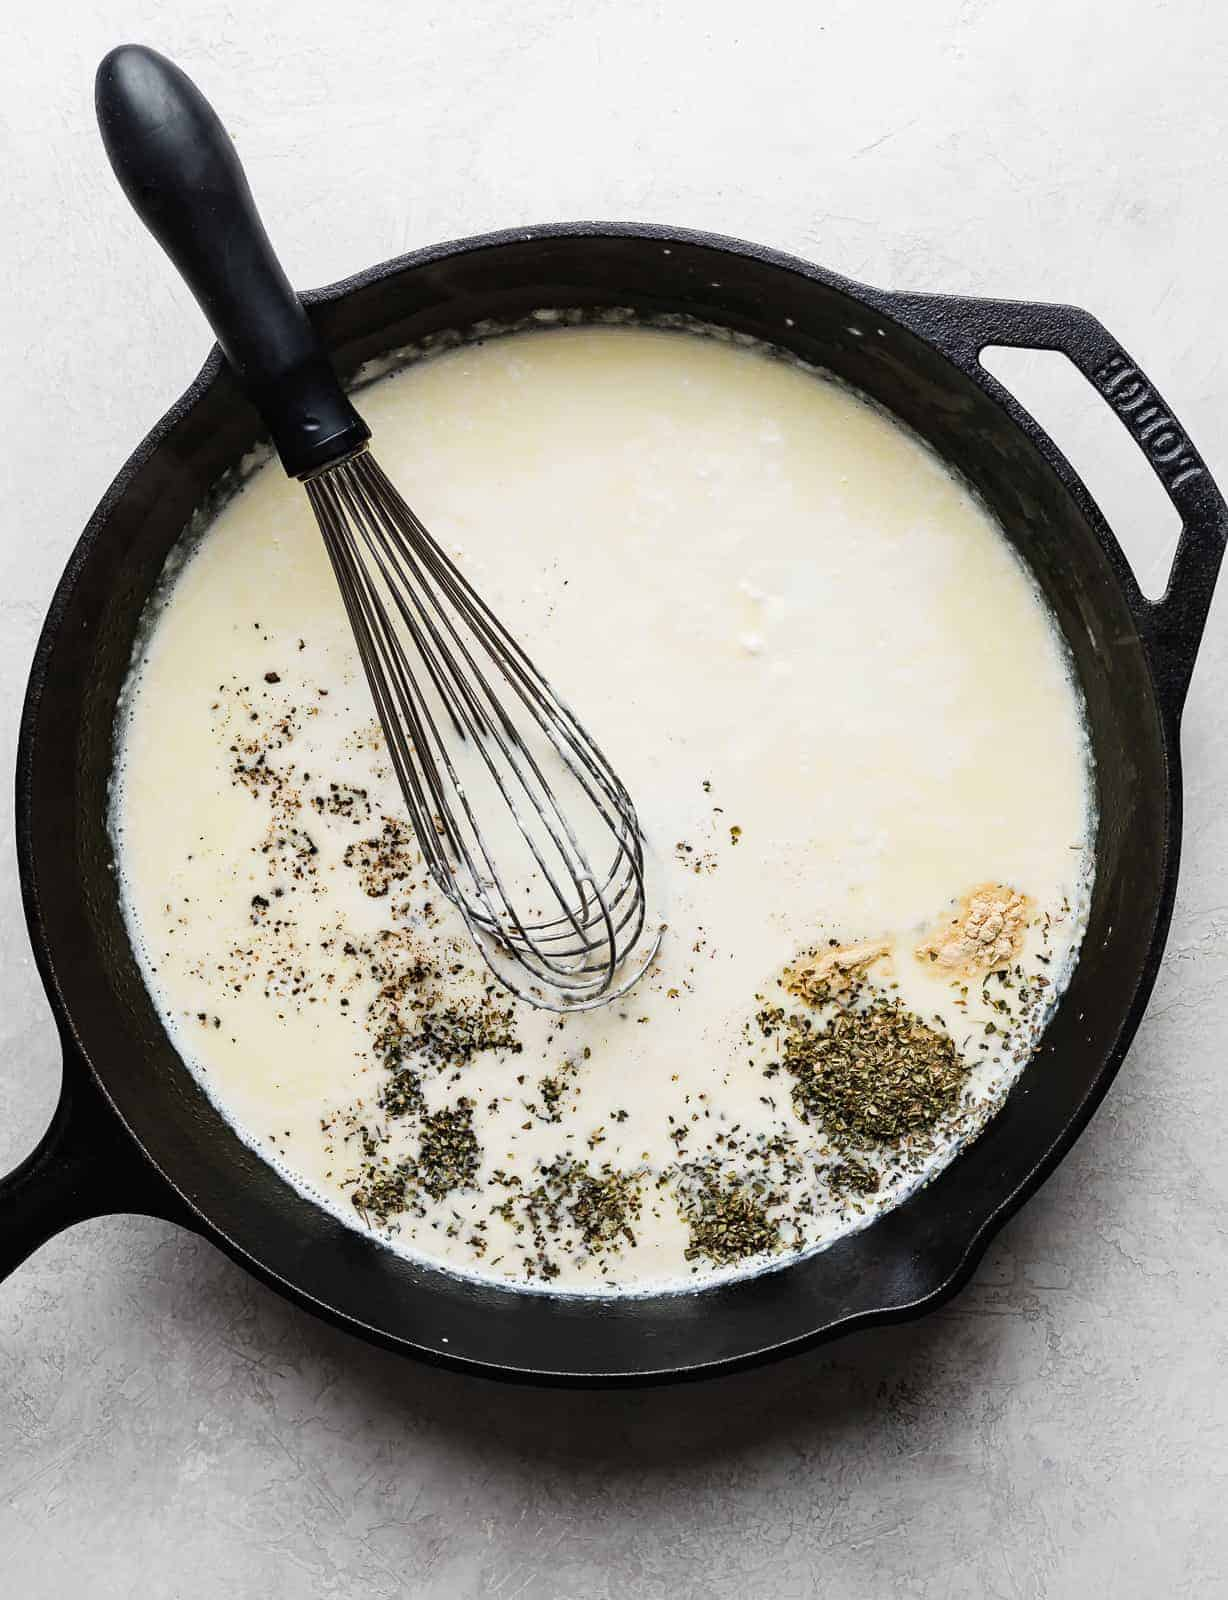 A skillet with cream and seasonings to make Fettuccine Alfredo.